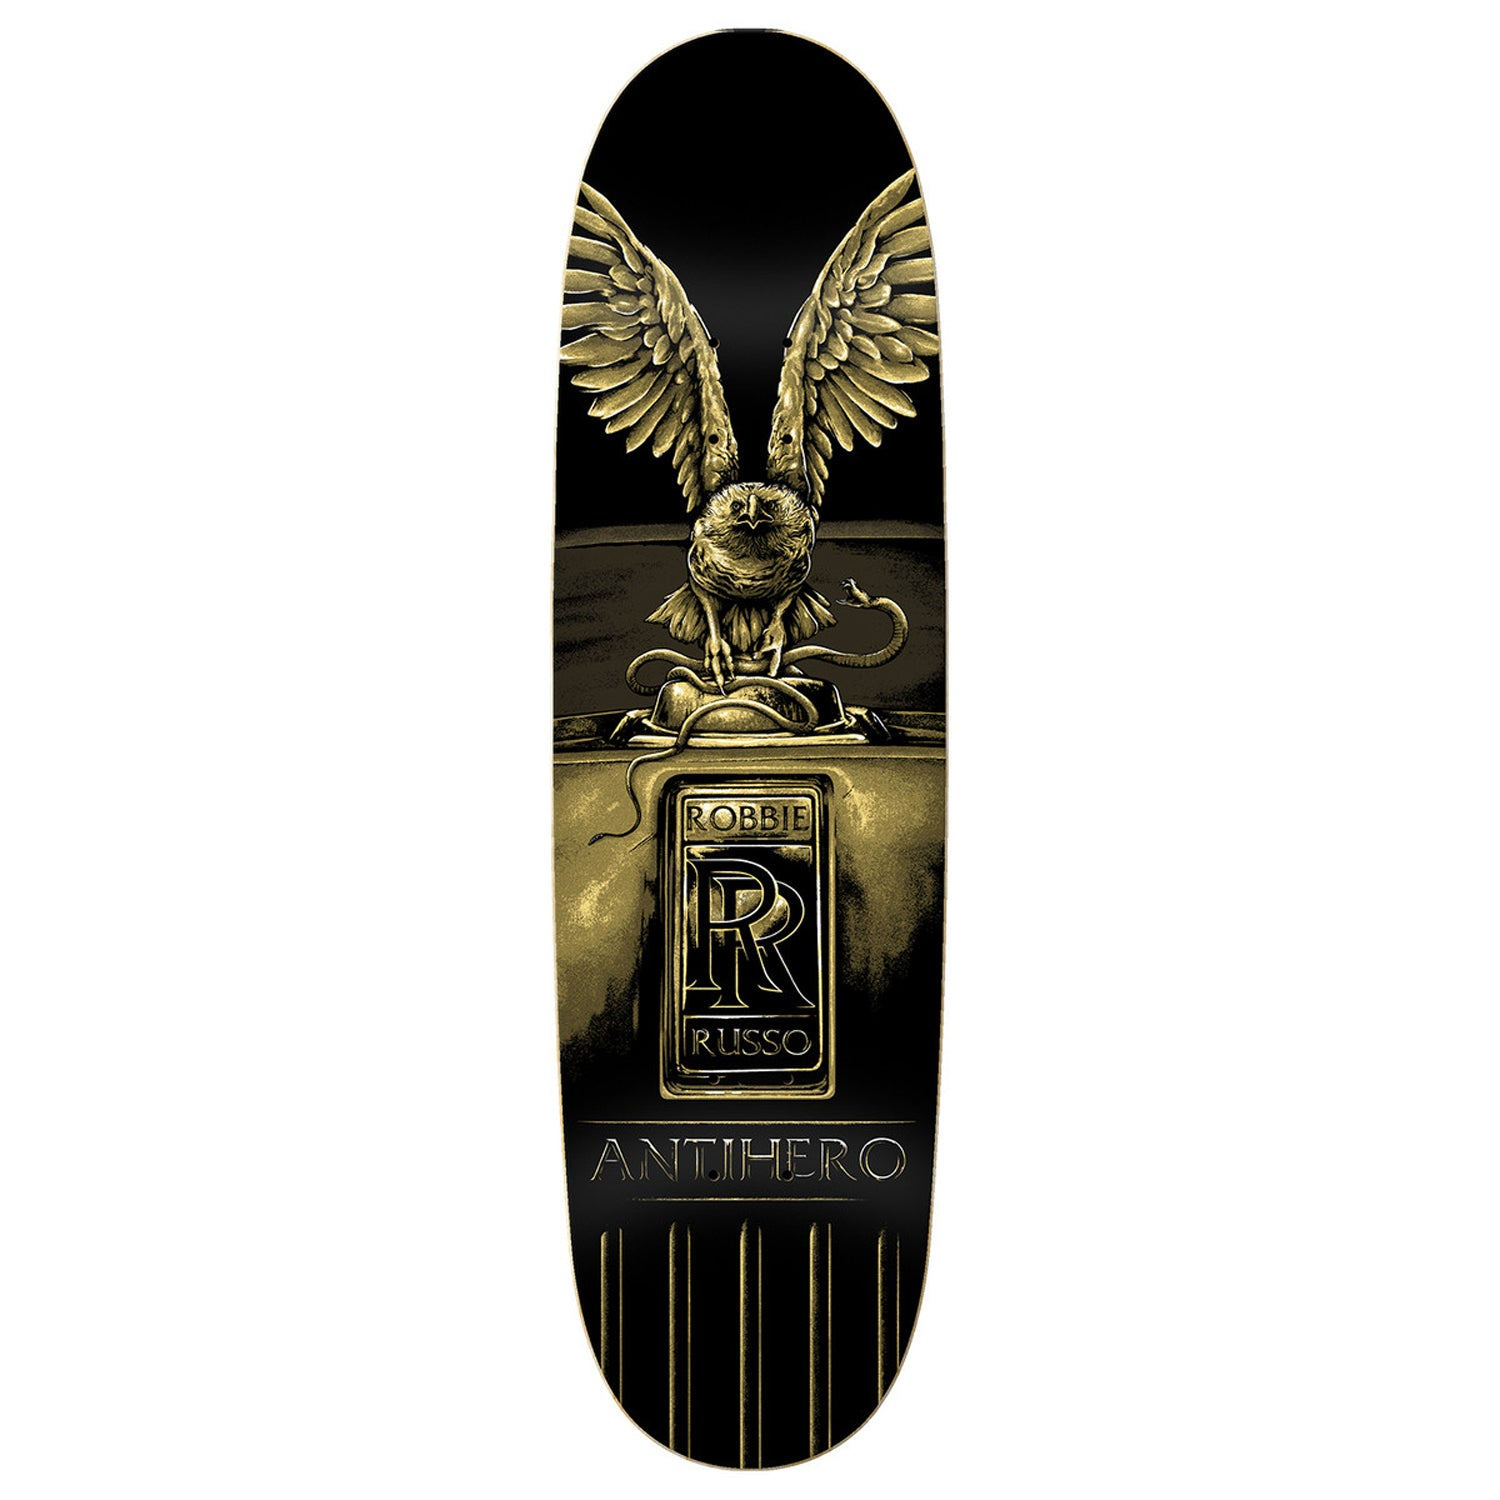 Anti-Hero Russo RR Deck 8.75""